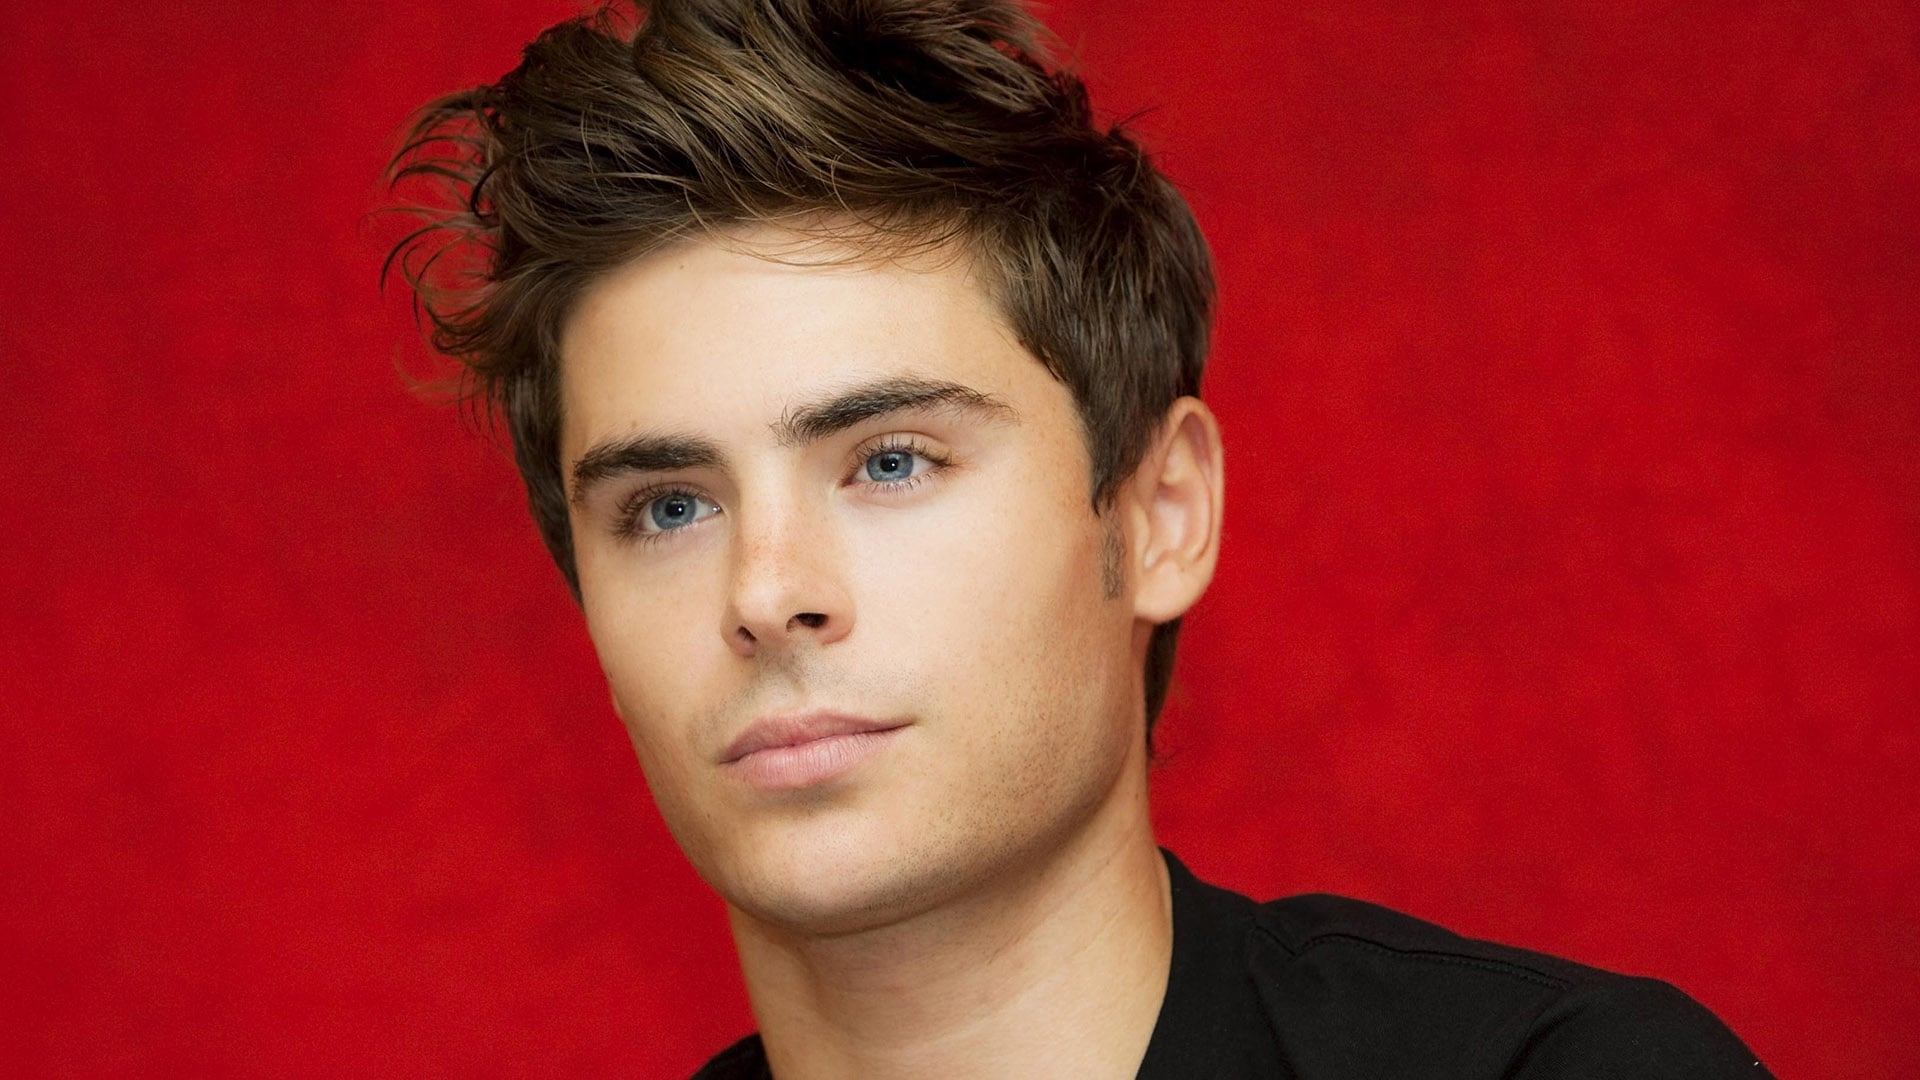 Best Zac Efron wallpapers backgrounds